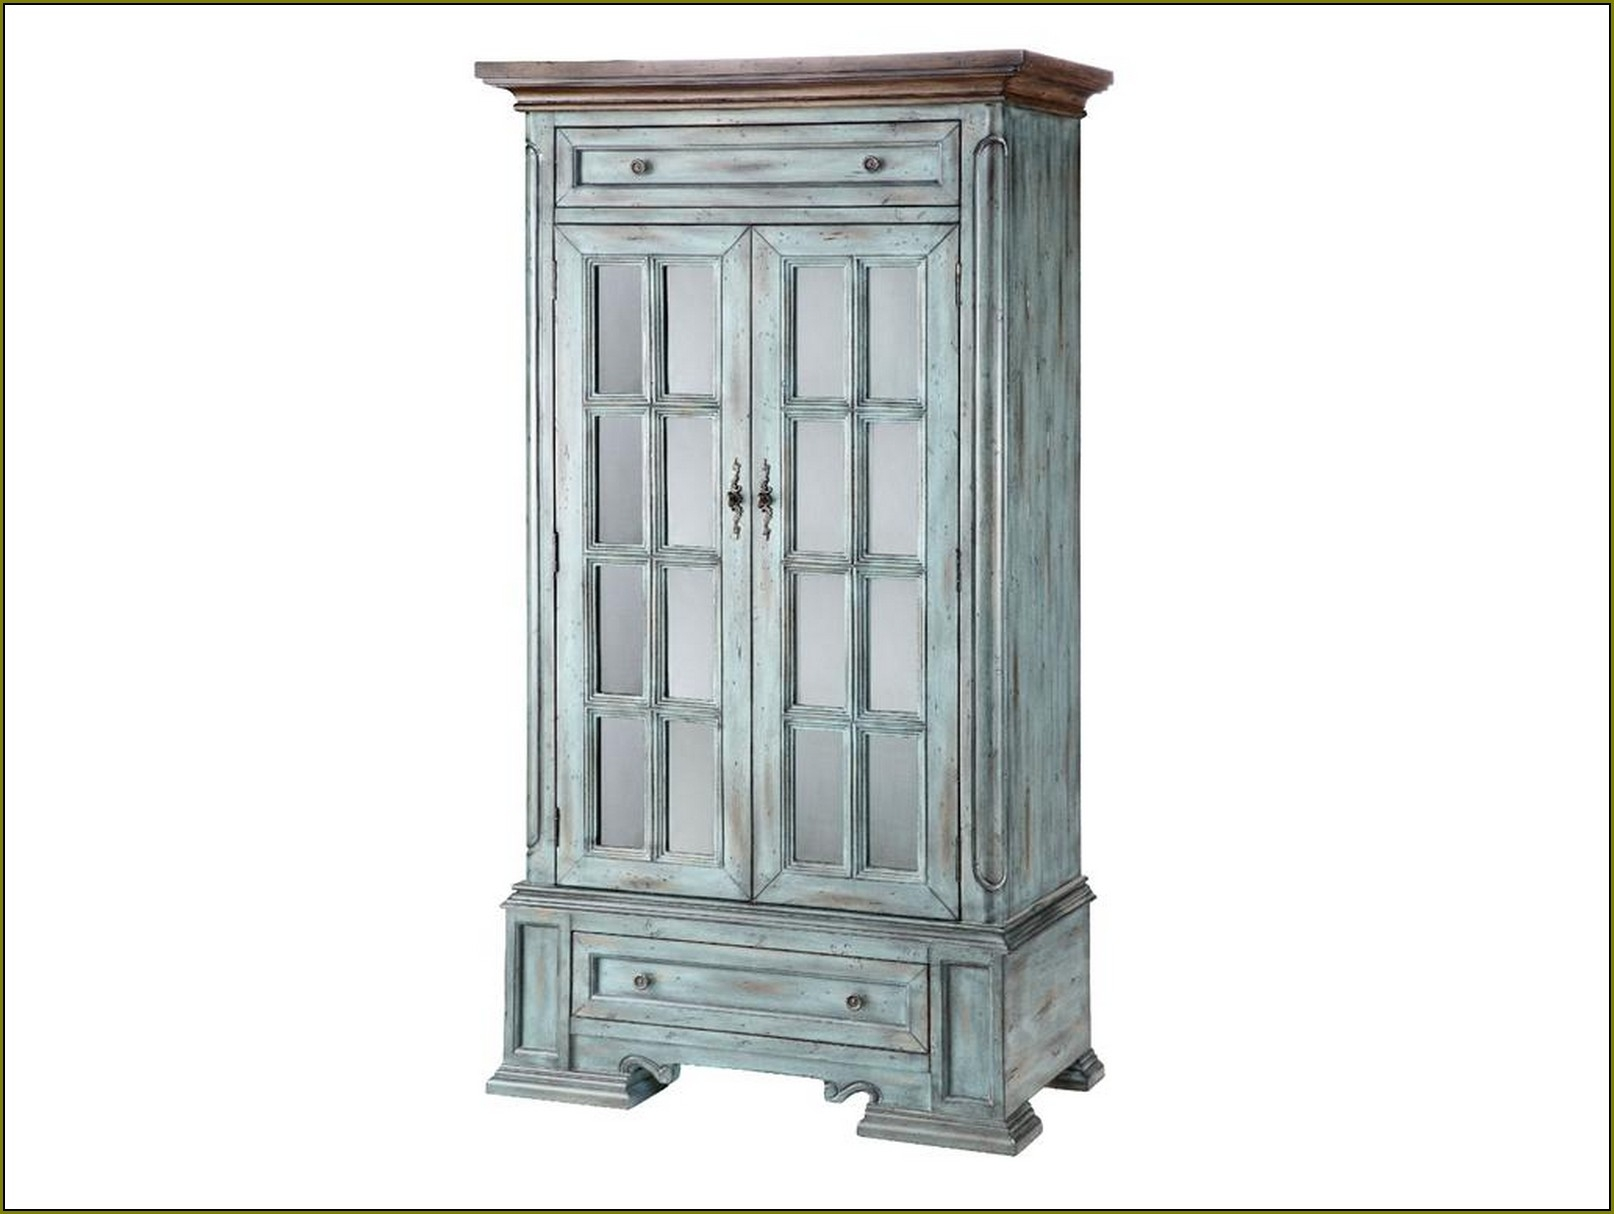 Tall Rustic Storage Cabinets